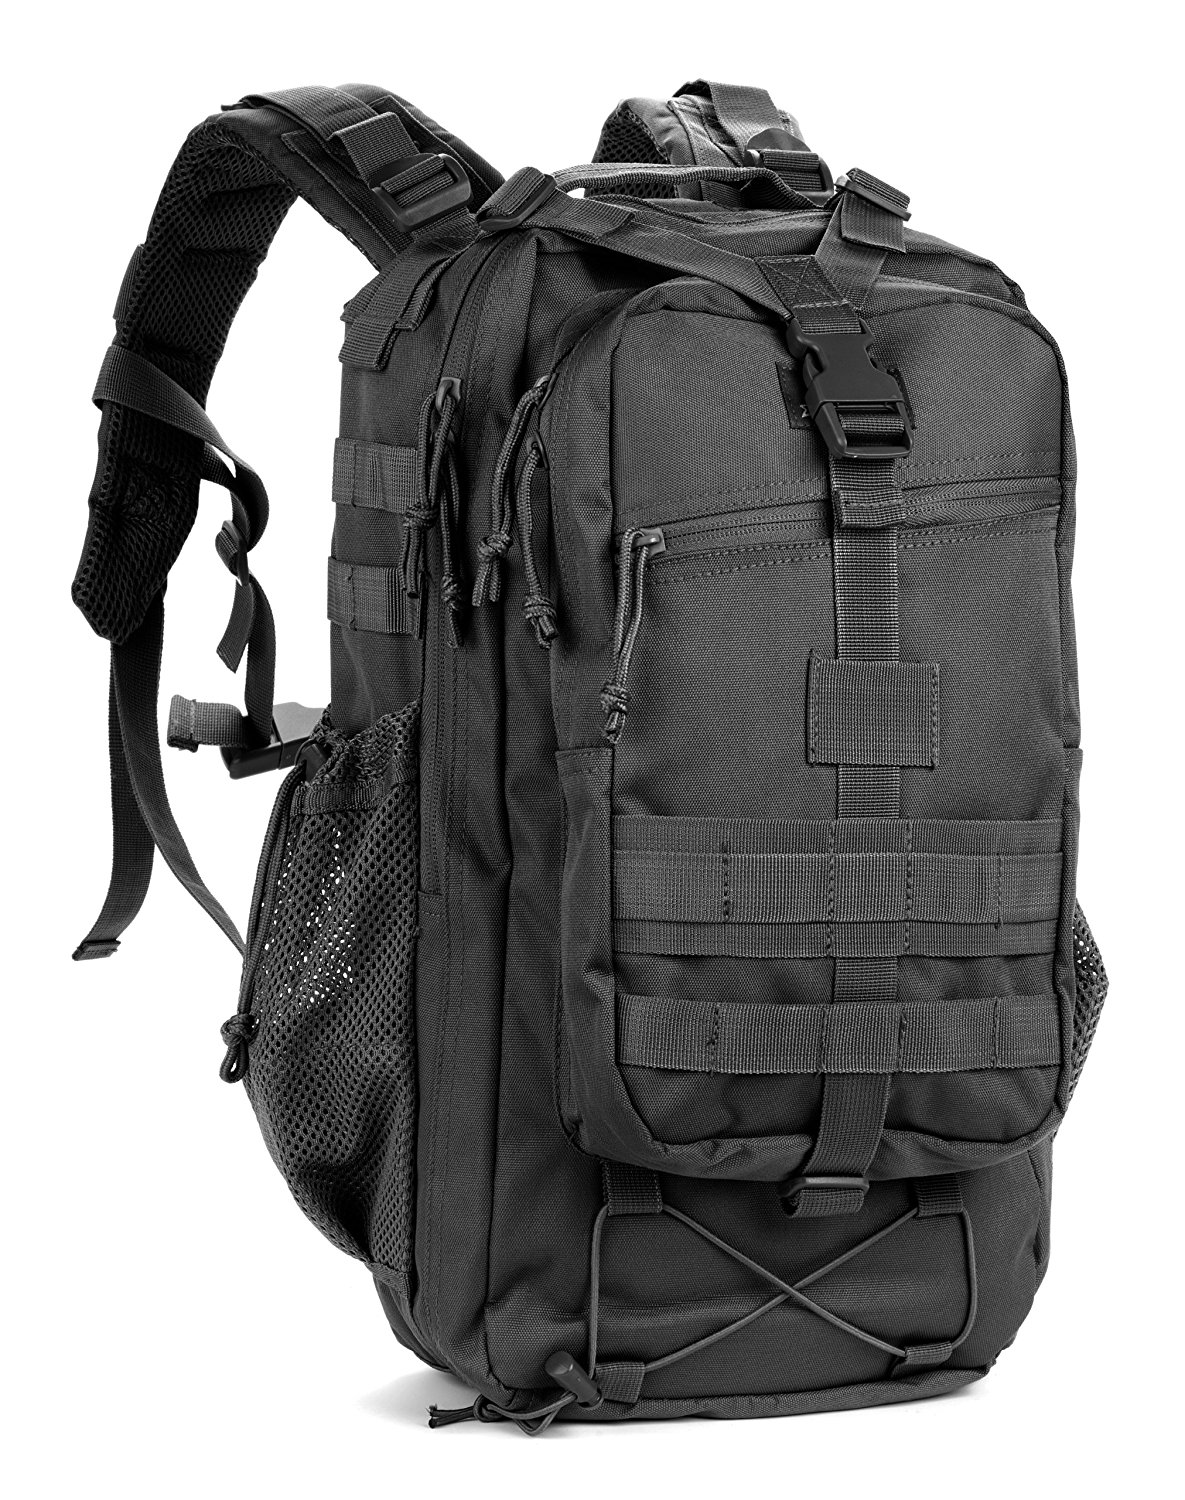 ac38eefa64 Get Quotations · Red Rock Outdoor Gear Summit Backpack